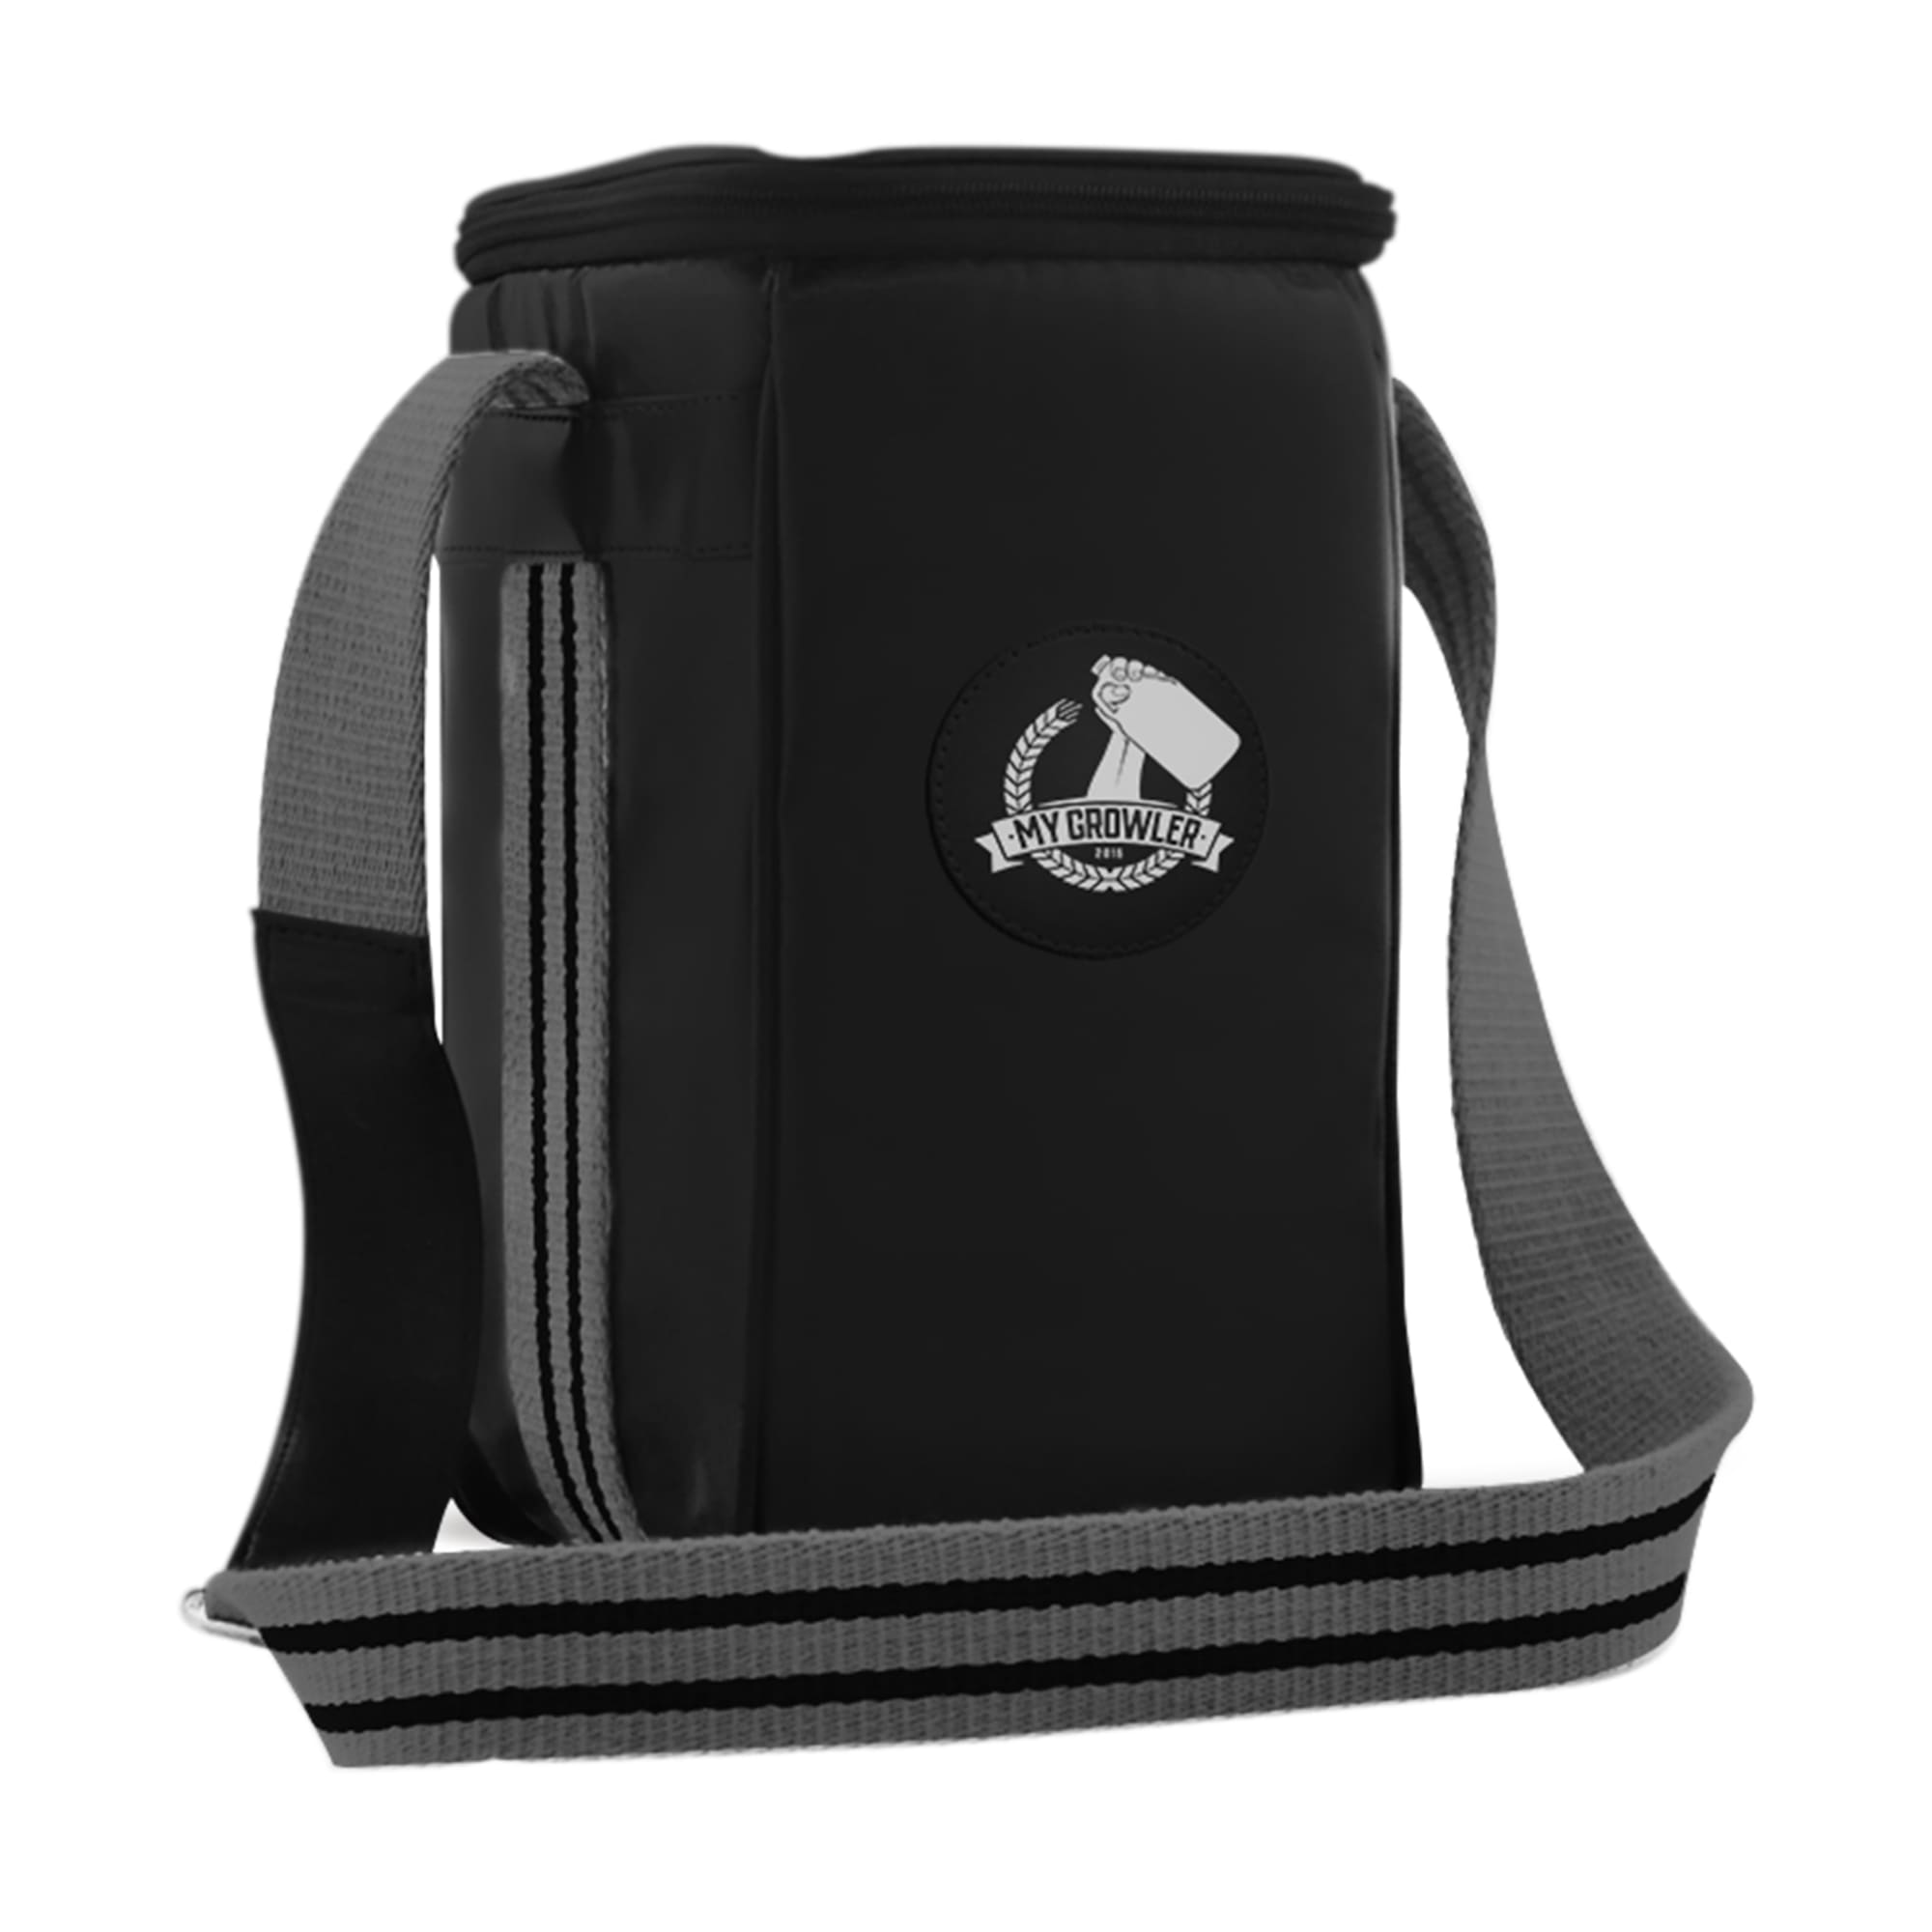 Growler Bag Travel para 1 growler - Preto